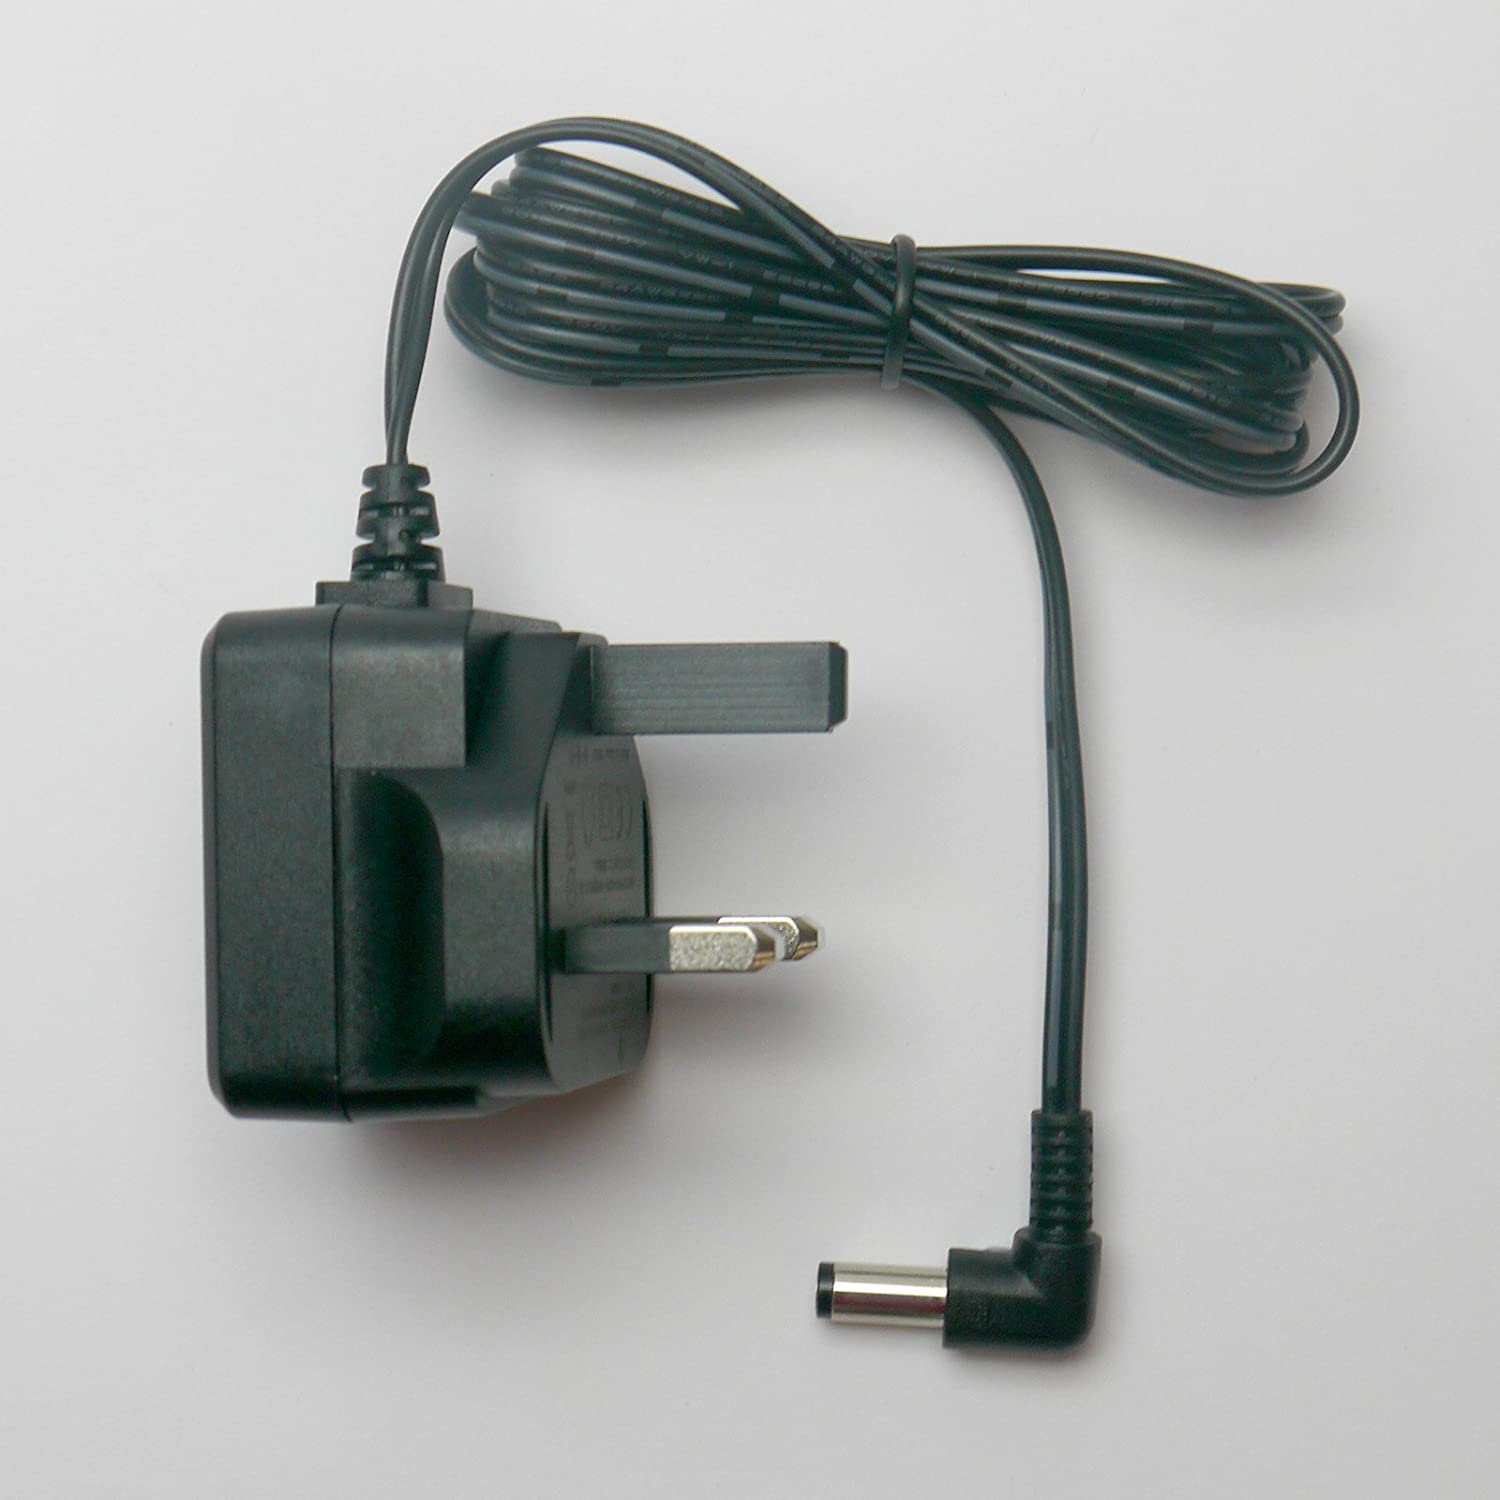 MyVolts 9V UK plug power supply compatible with Boss BR-800 Recorder